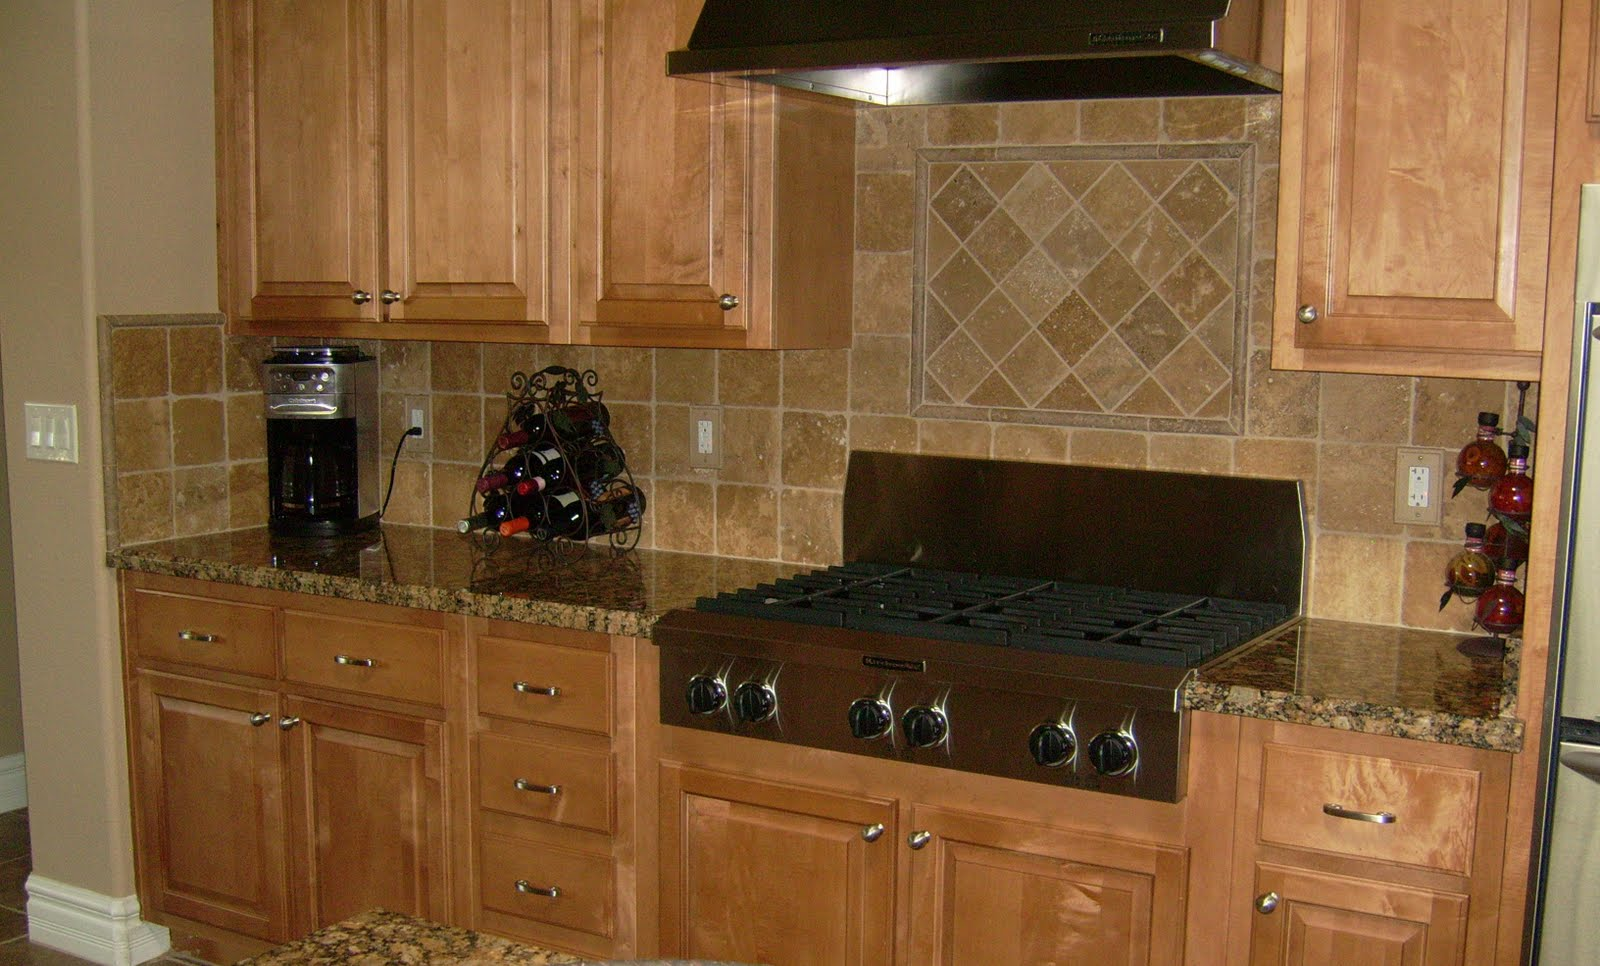 Pictures Kitchen Backsplash Ideas  6x6 Tumbled Stone Kitchen Backsplash $699